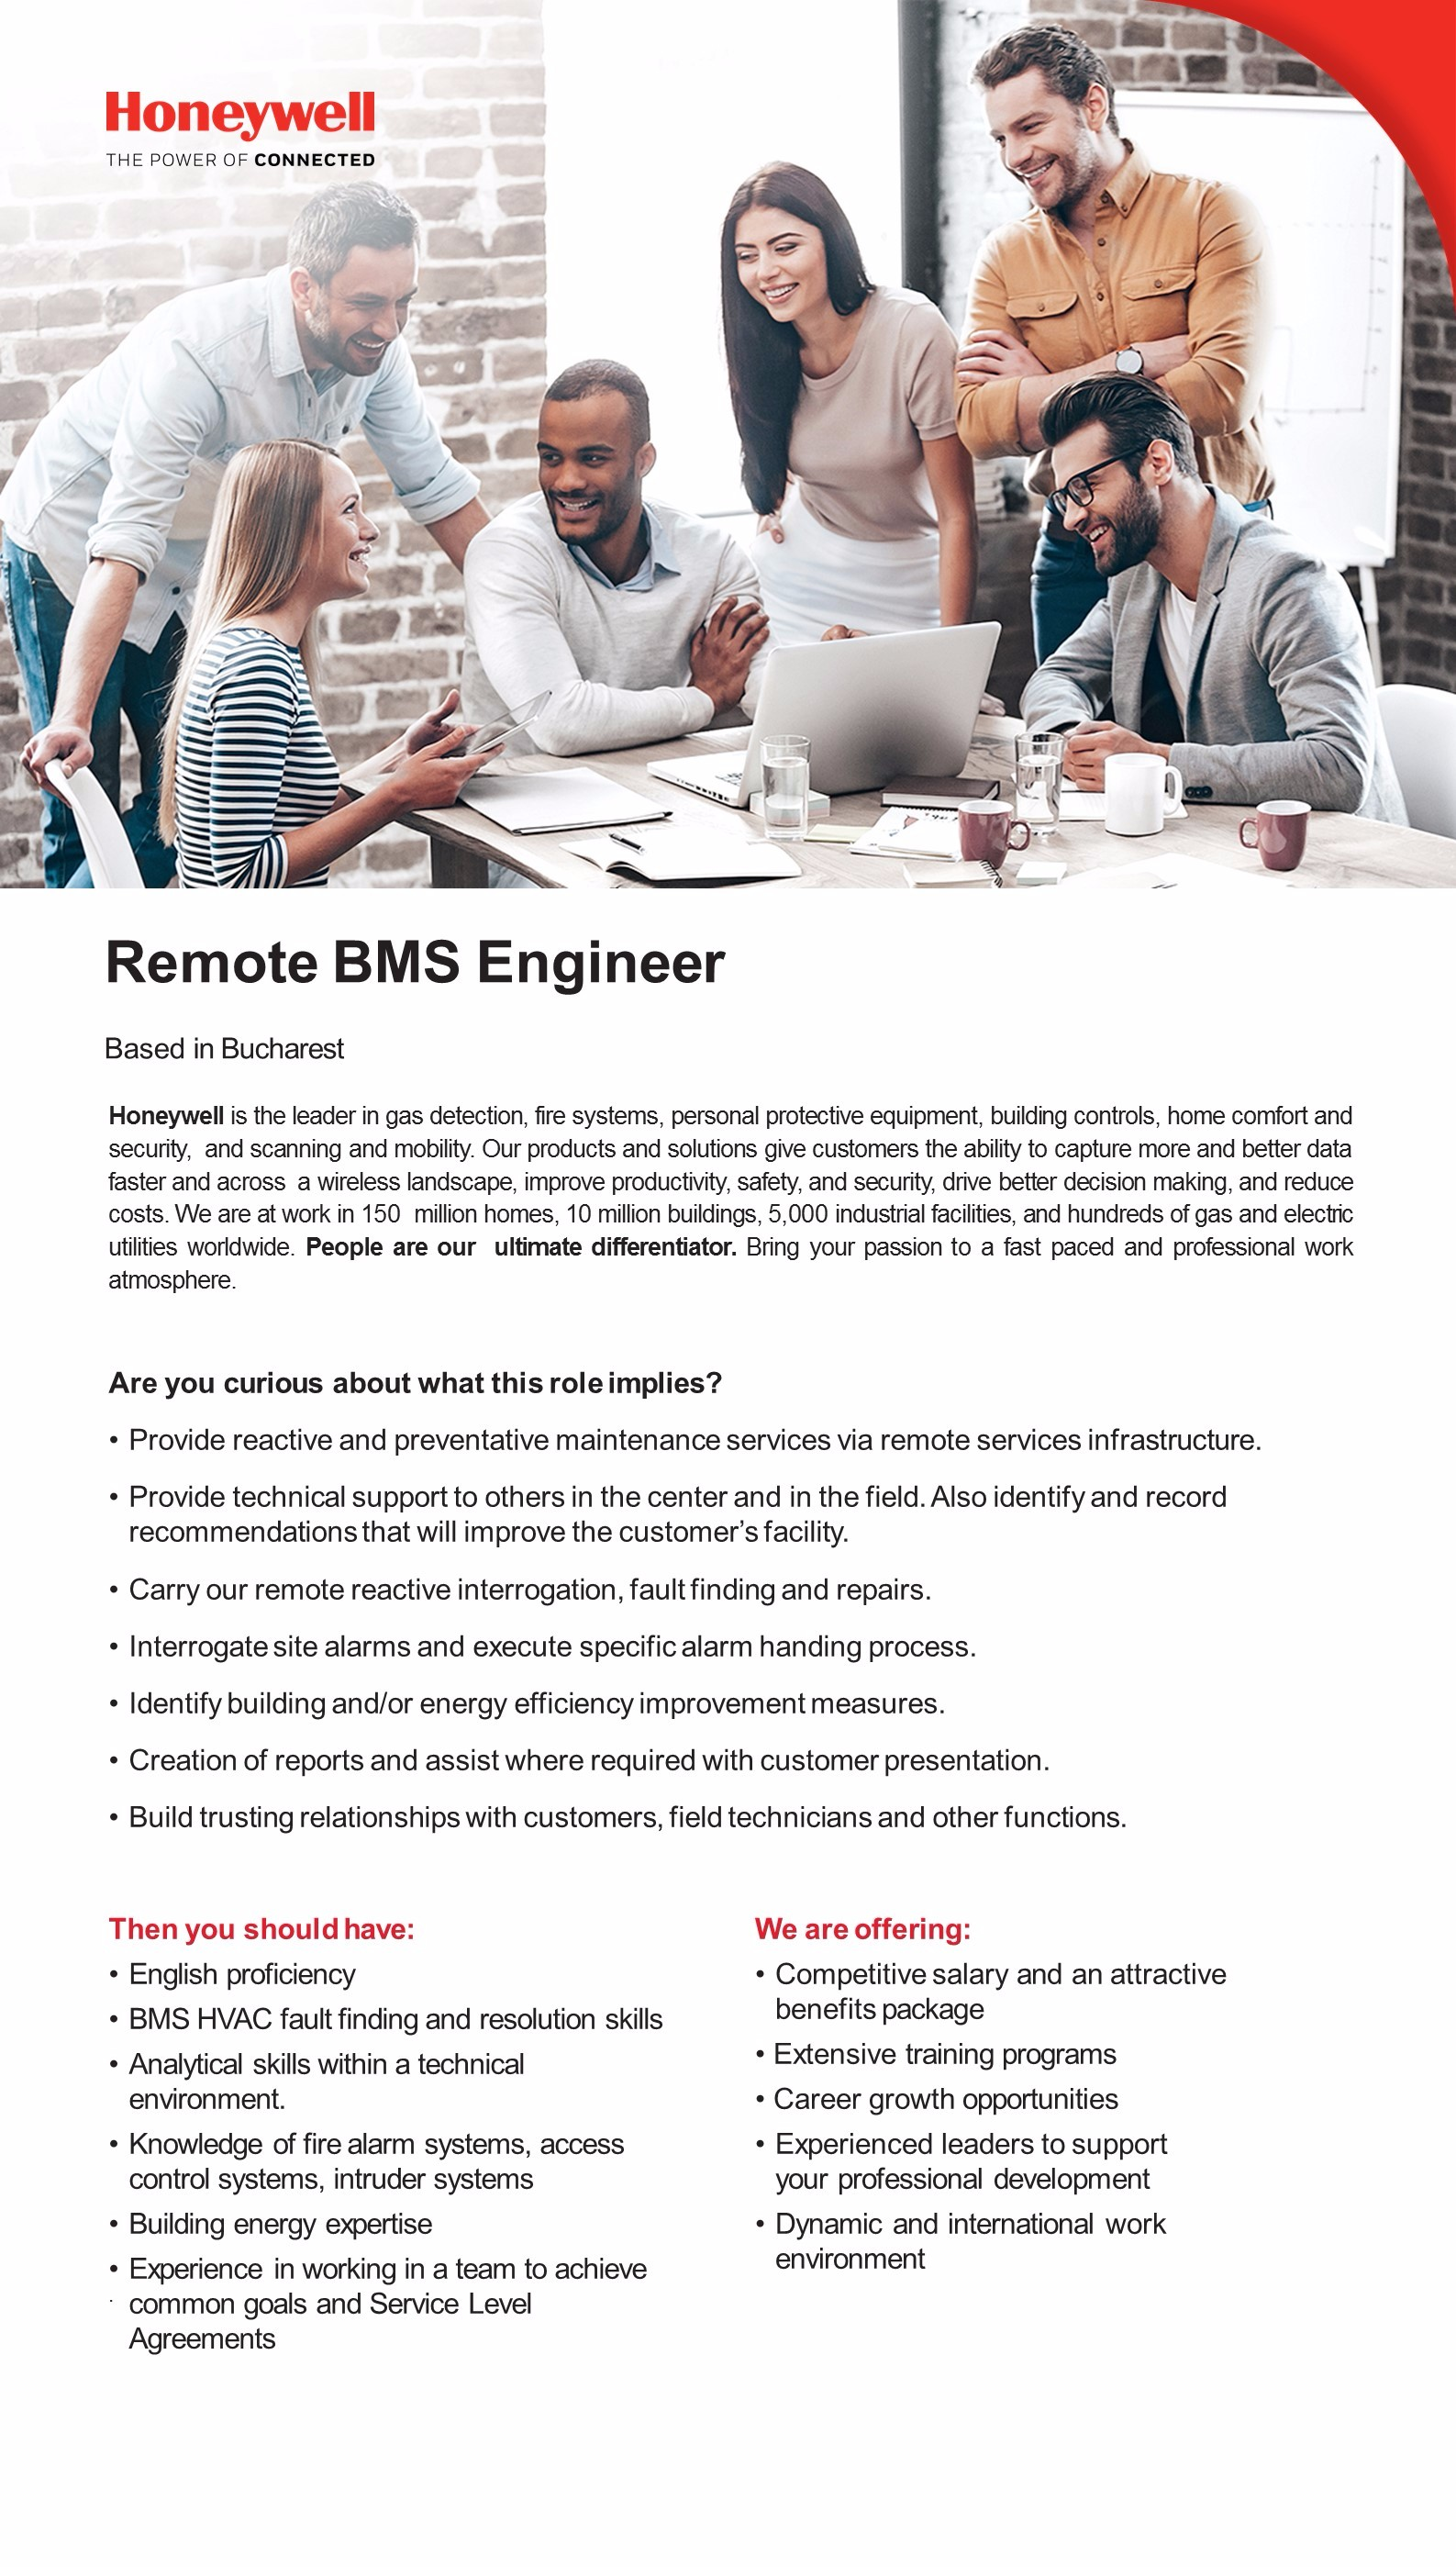 Remote BMS Engineer